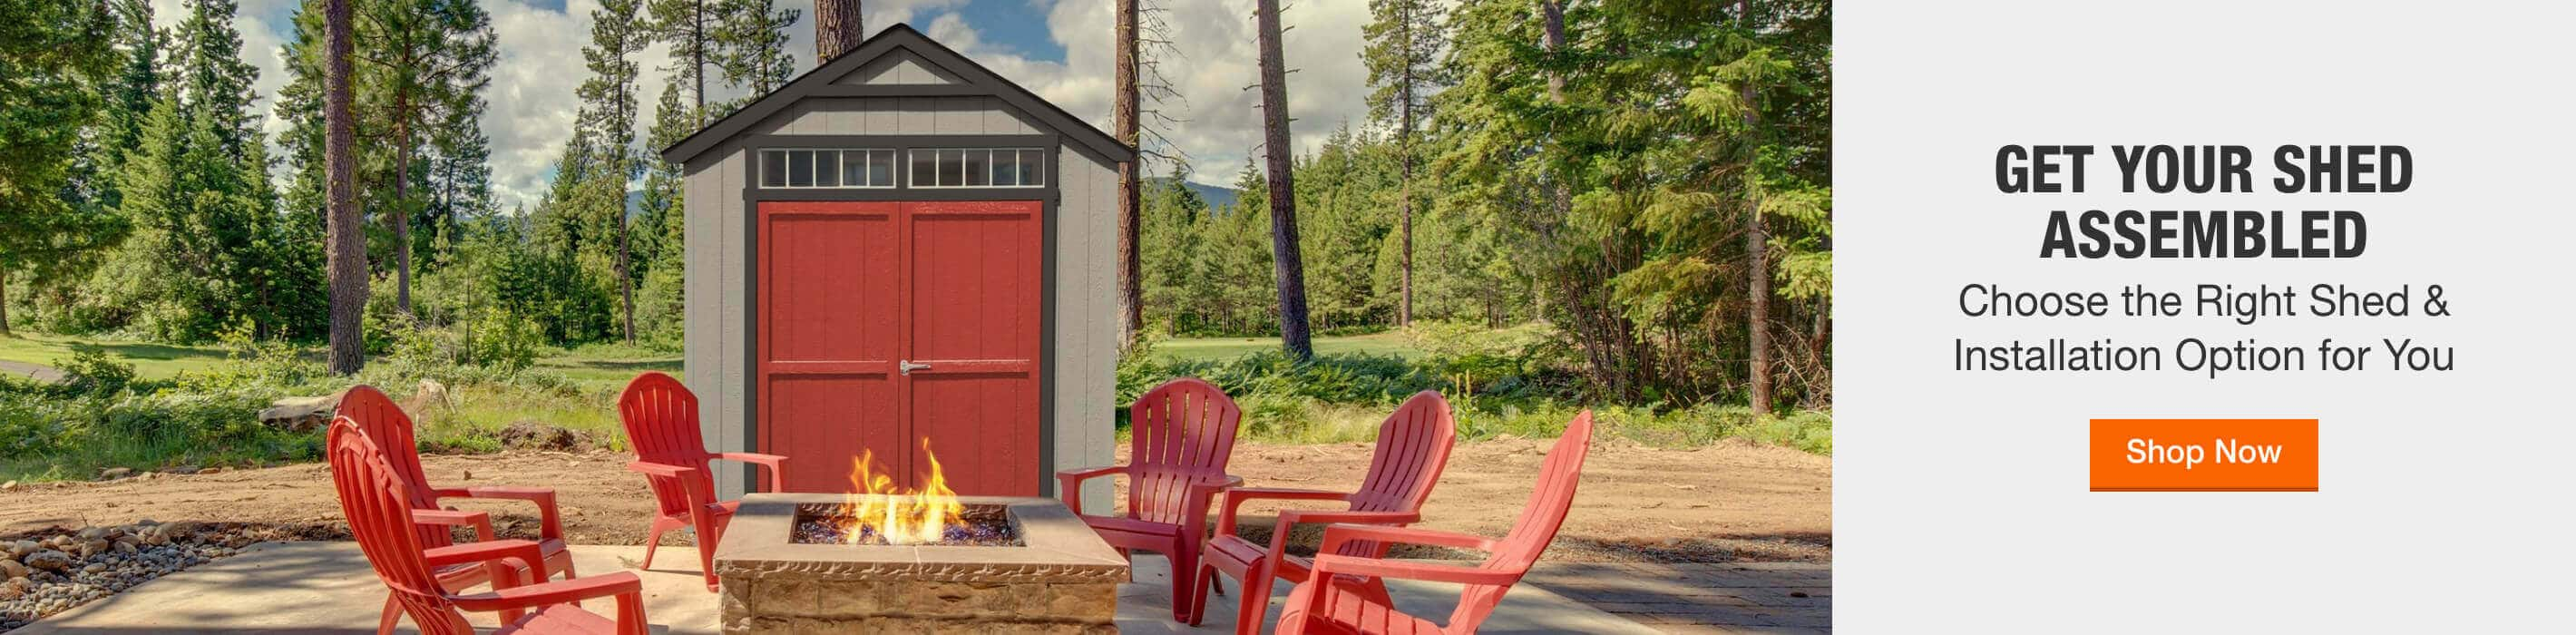 GET YOUR SHED ASSEMBLED Choose the Right Shed & Installation Option for You Shop Now